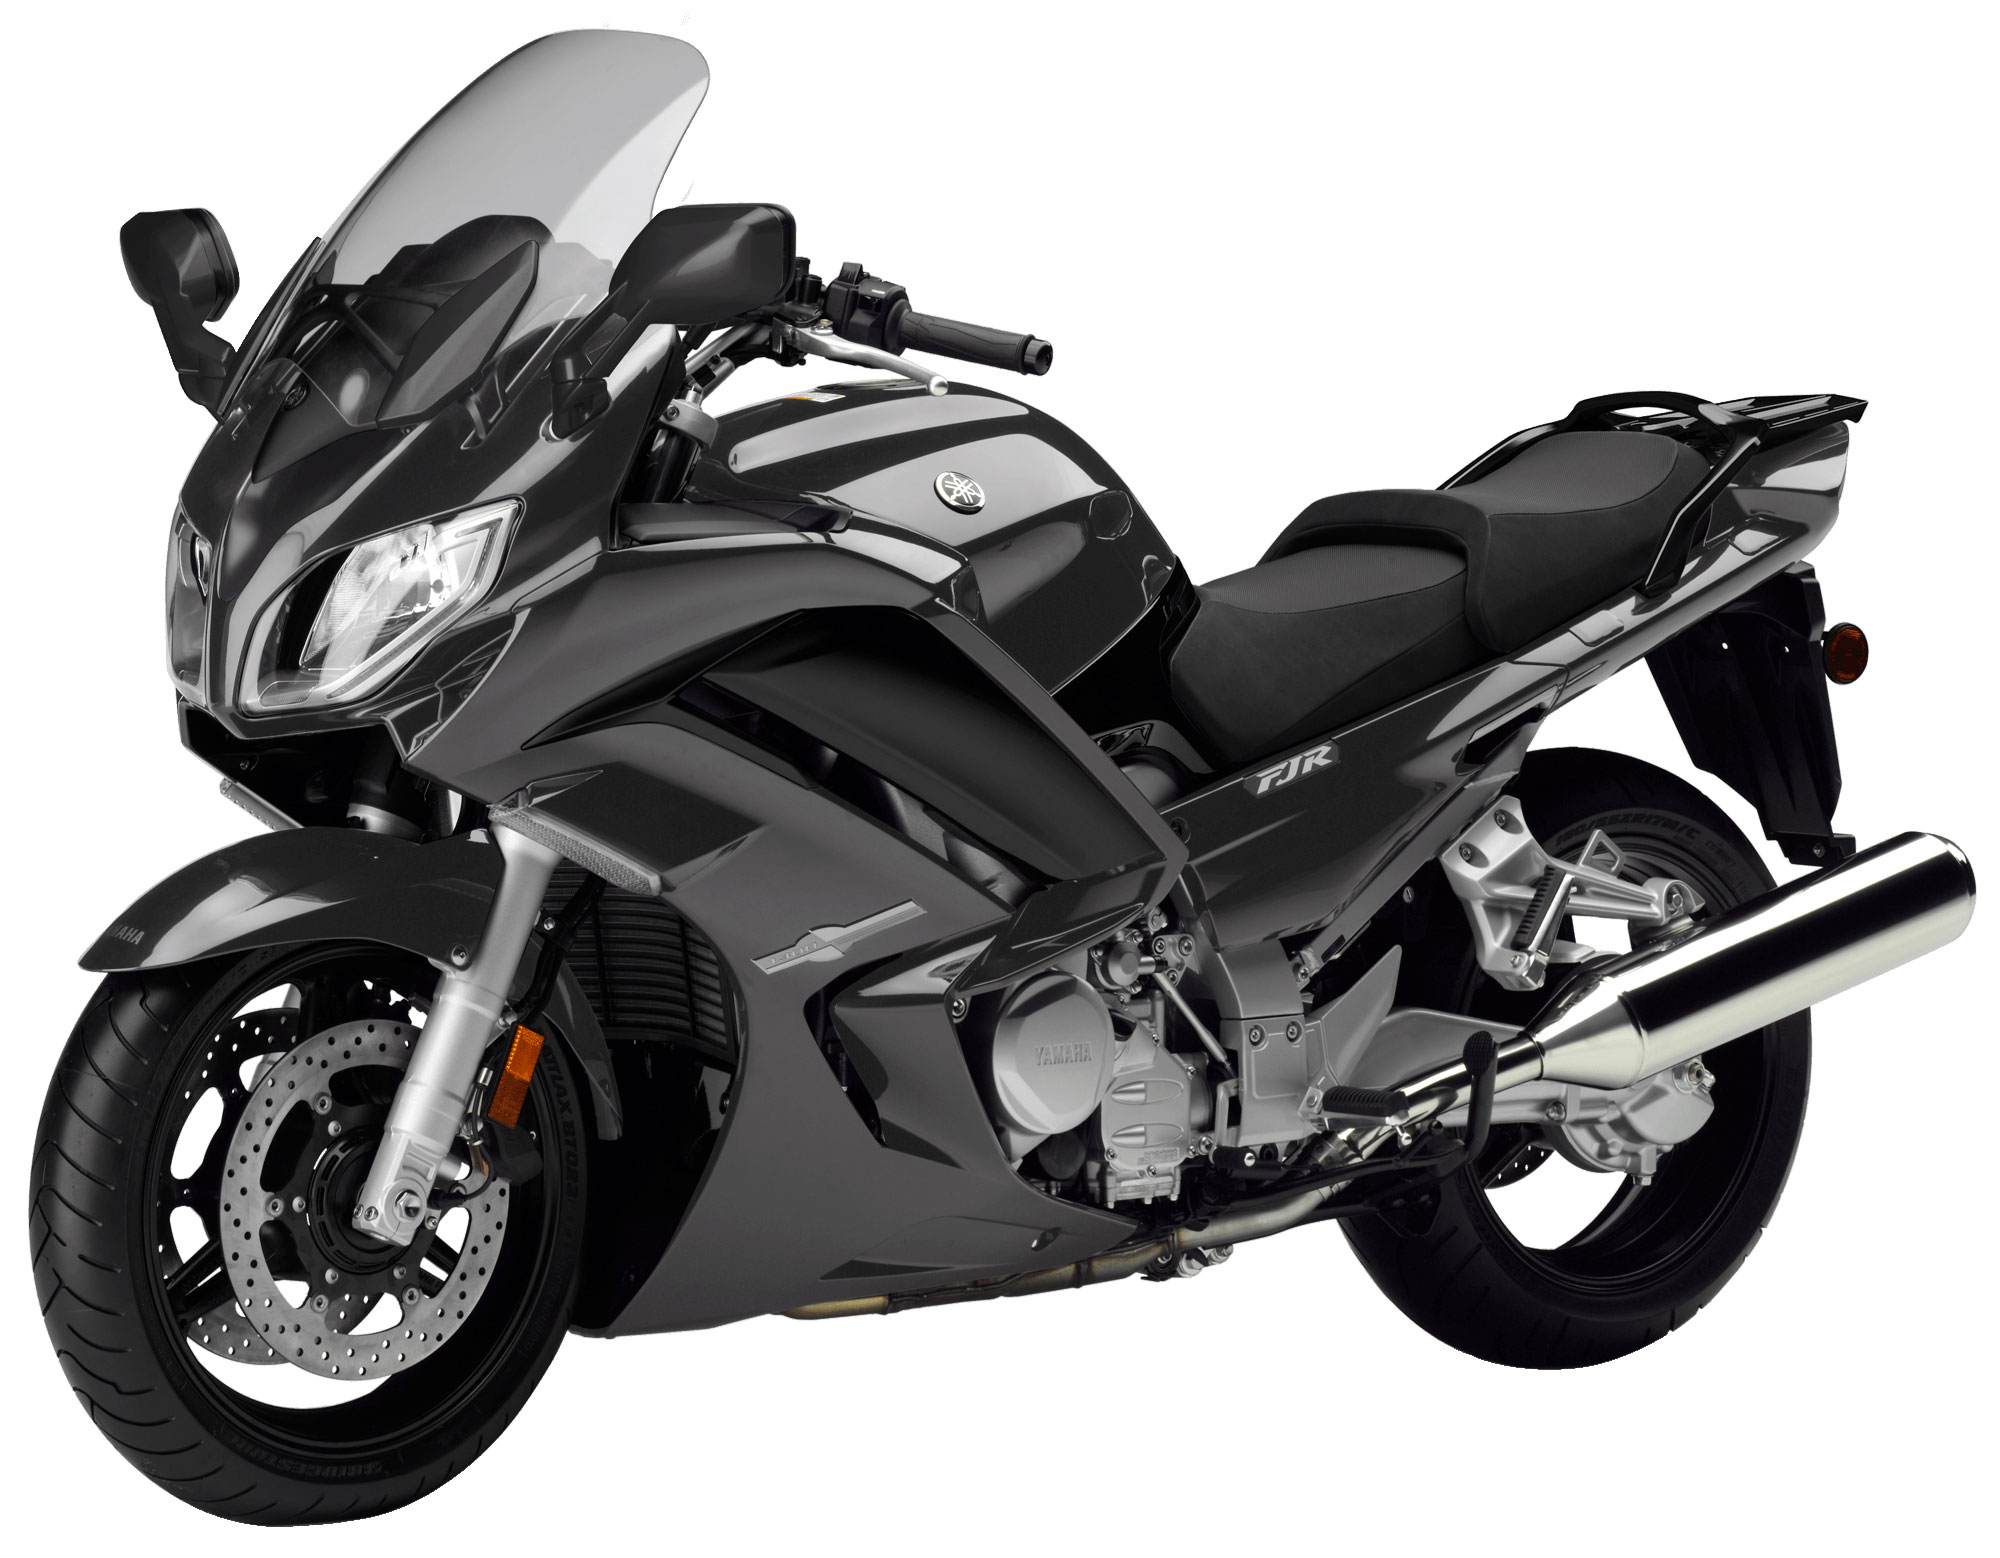 2015 yamaha fjr1300 review. Black Bedroom Furniture Sets. Home Design Ideas